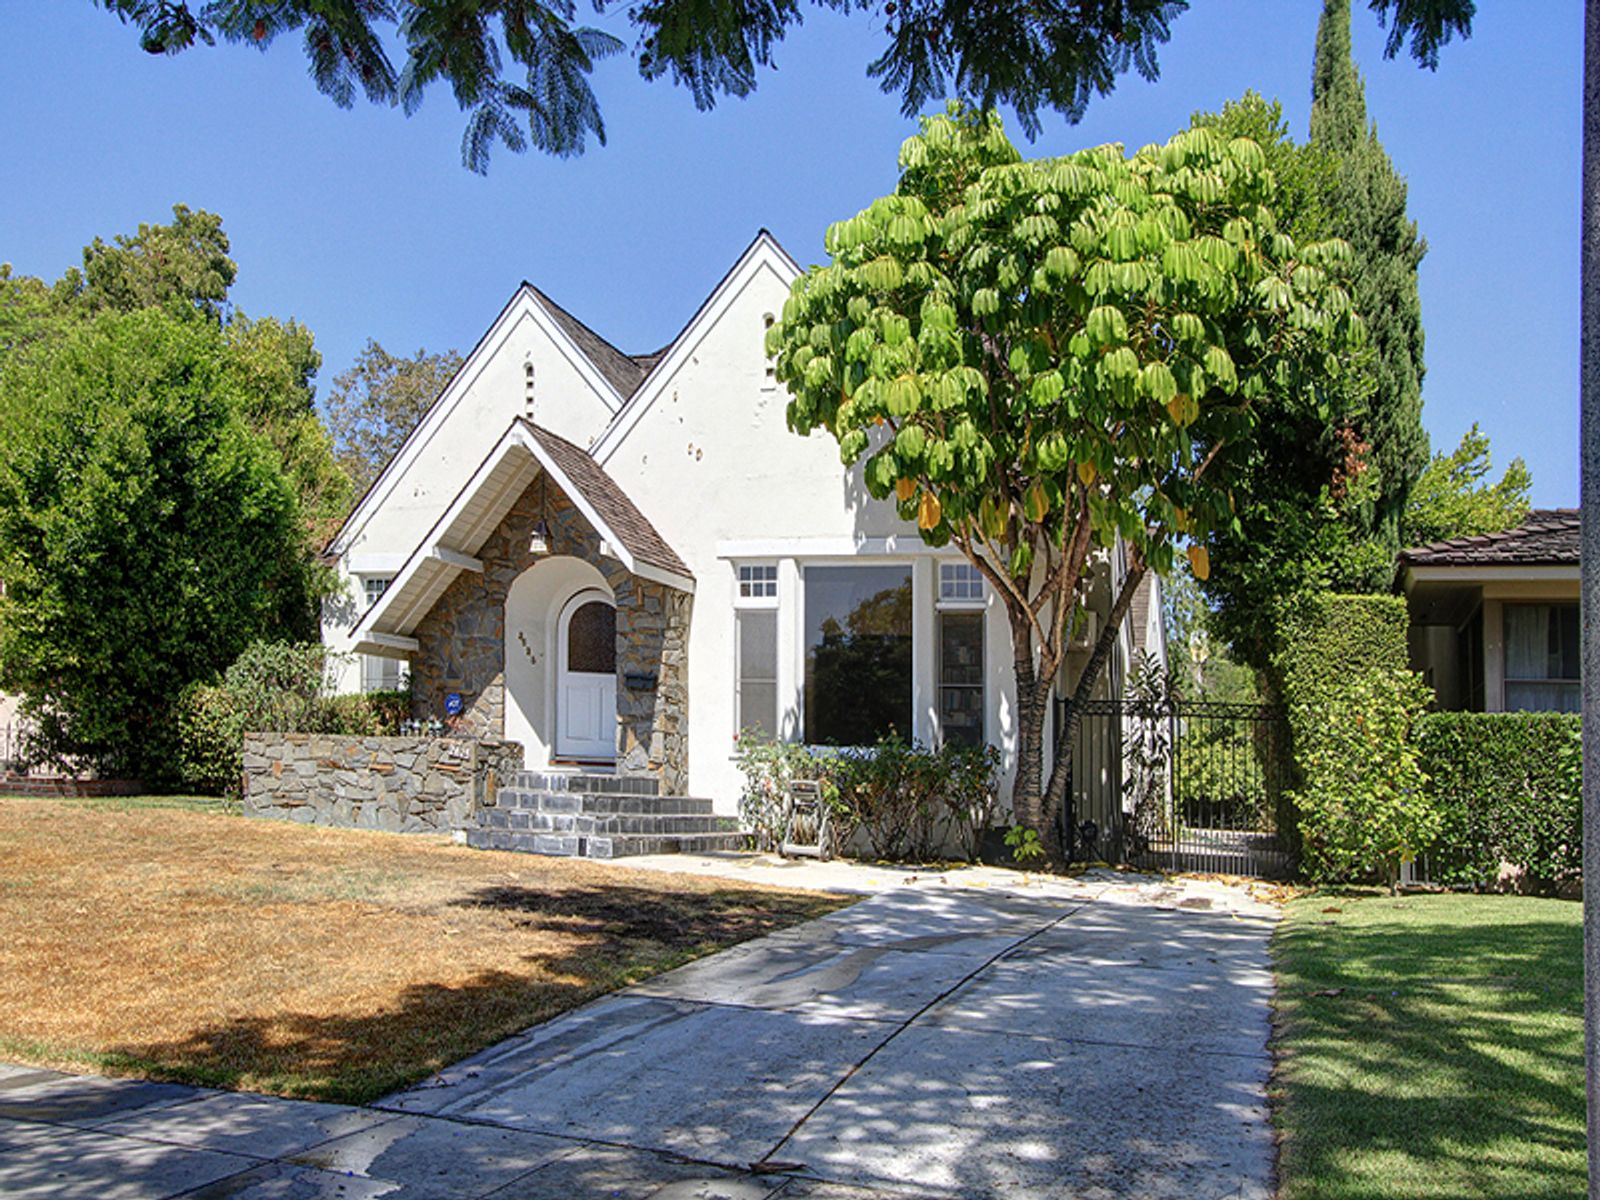 Mission District, San Marino CA Single Family Home - Pasadena Real Estate